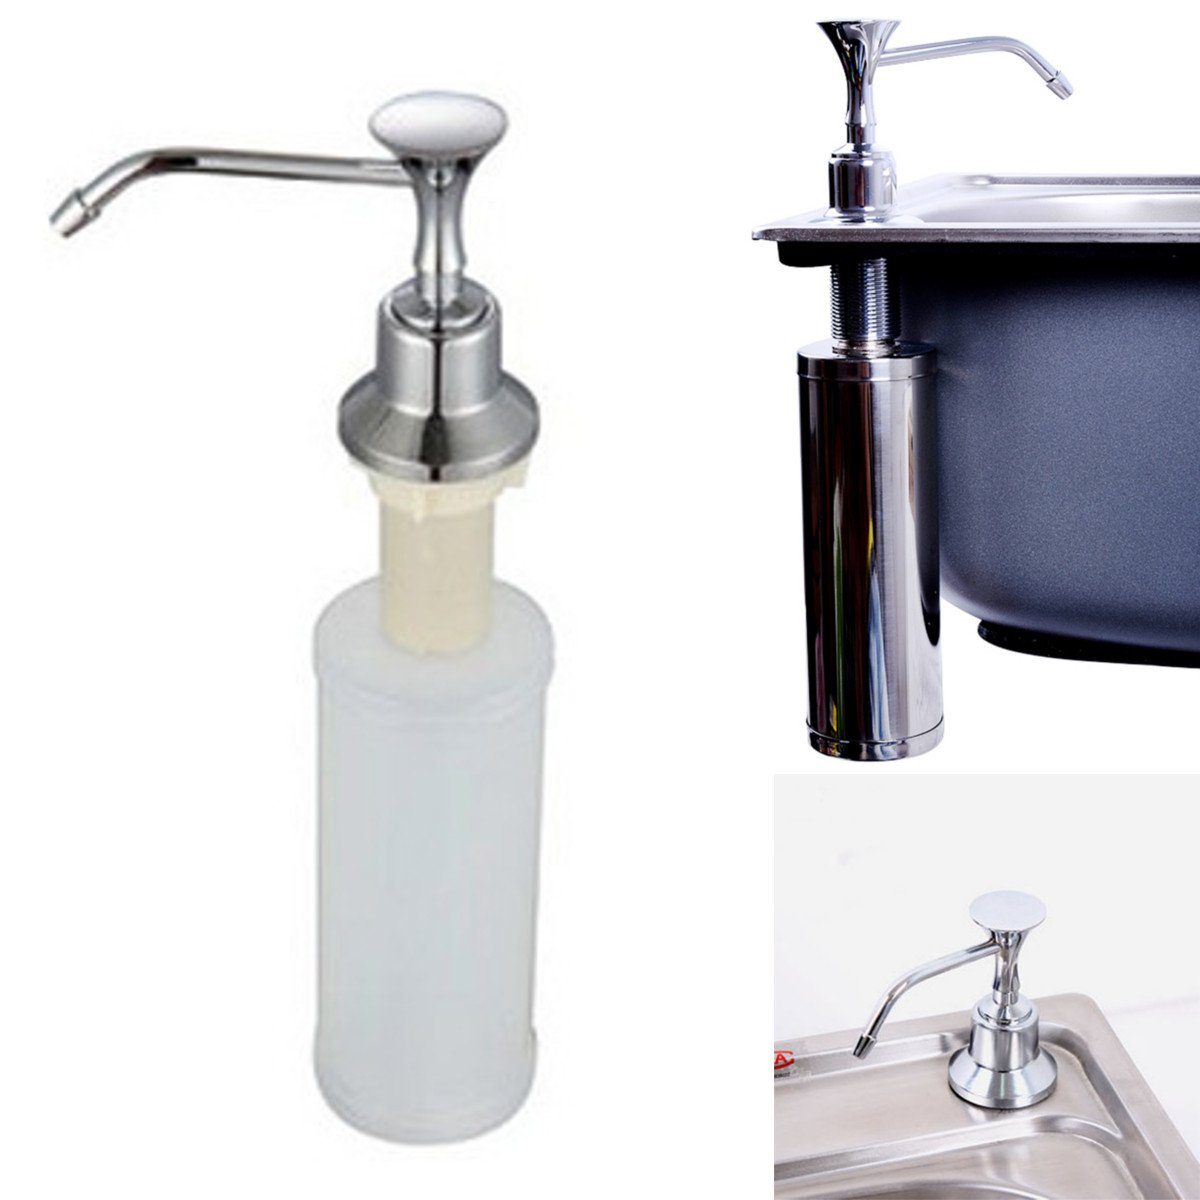 220ml White Kitchen Chrome Liquid Soap Dispenser Bathroom Sink Pump